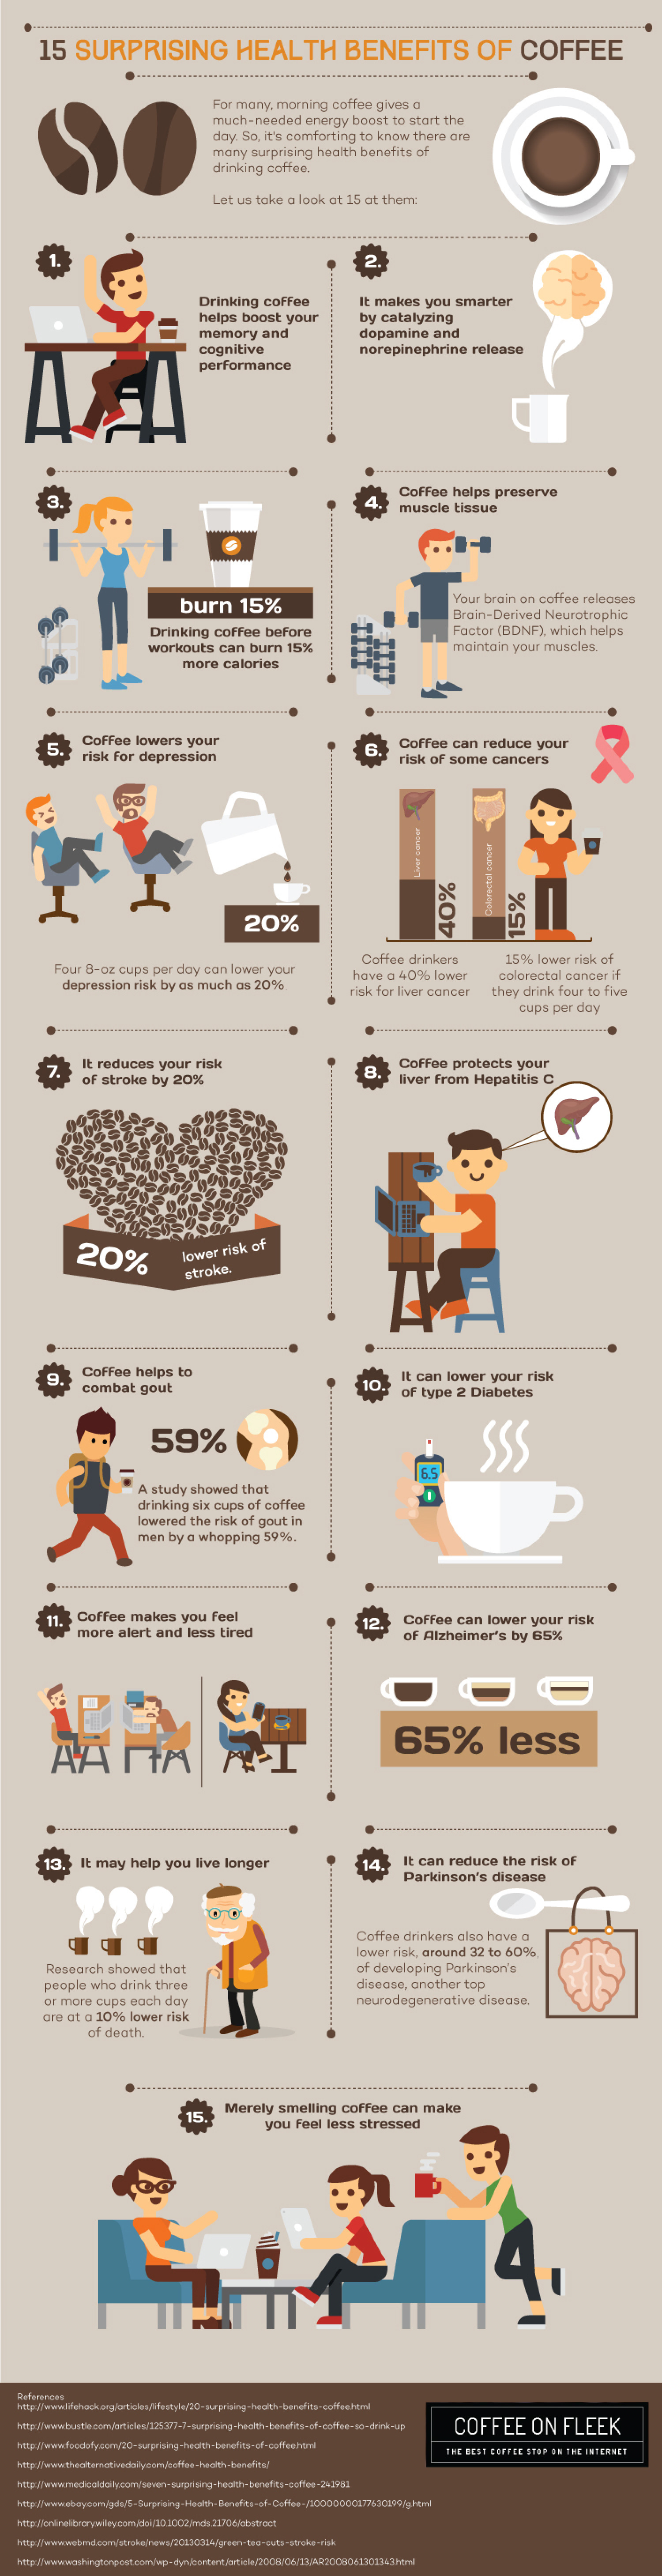 15 Surprising Health Benefits of Coffee Infographic